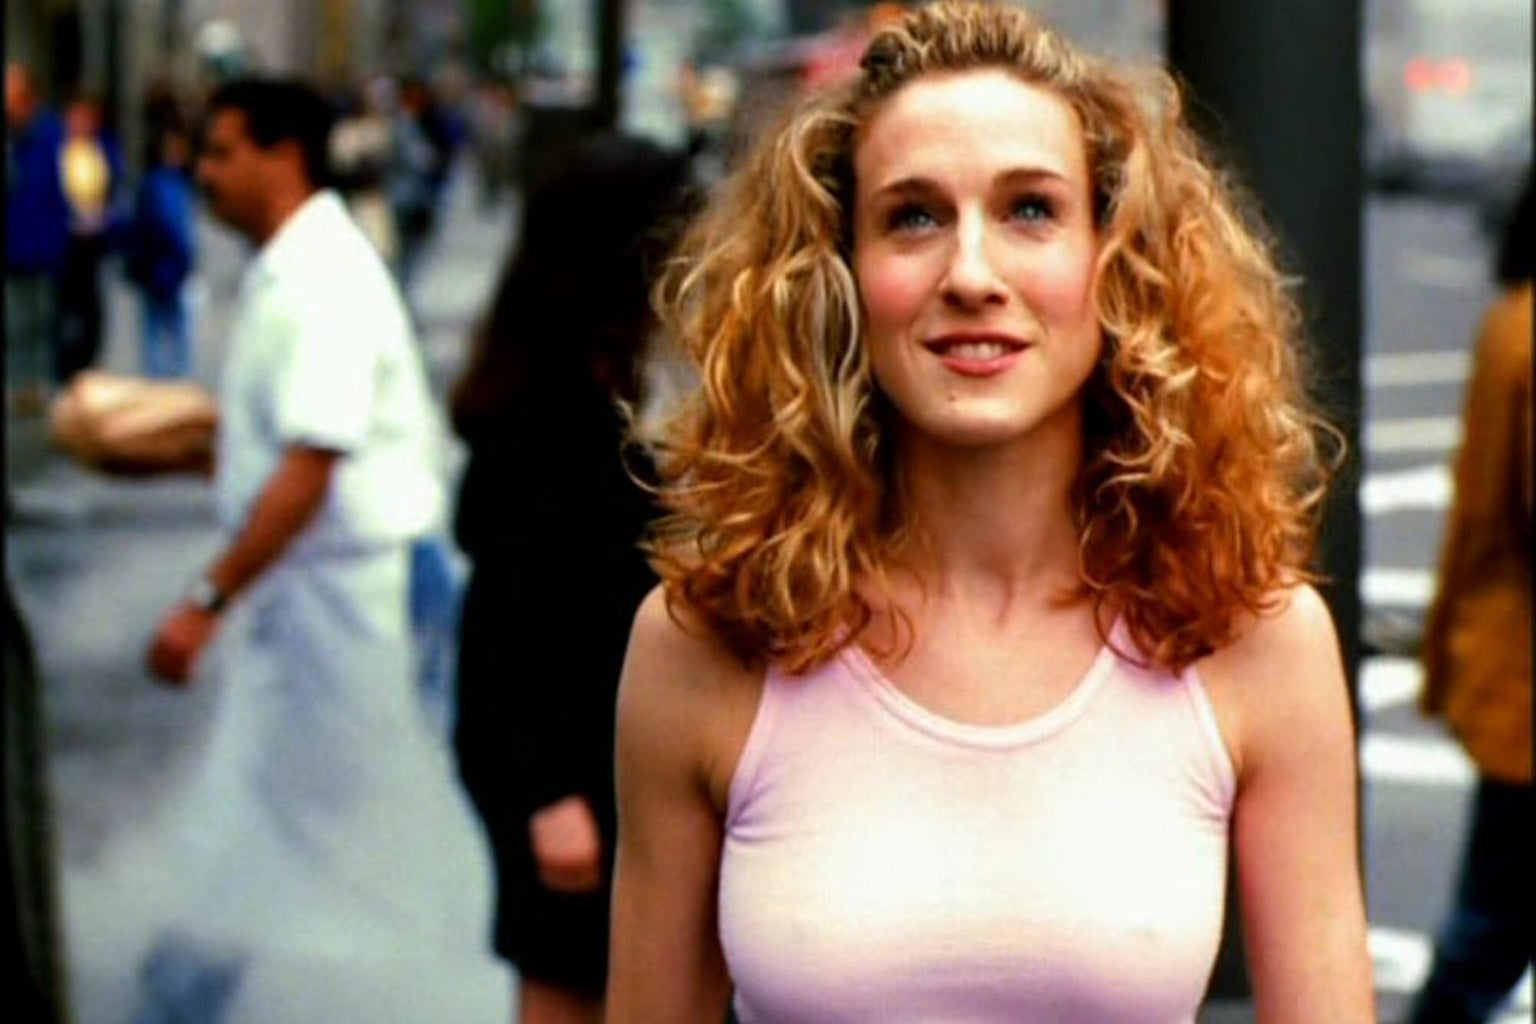 Carrie Bradshaw in theme song dress